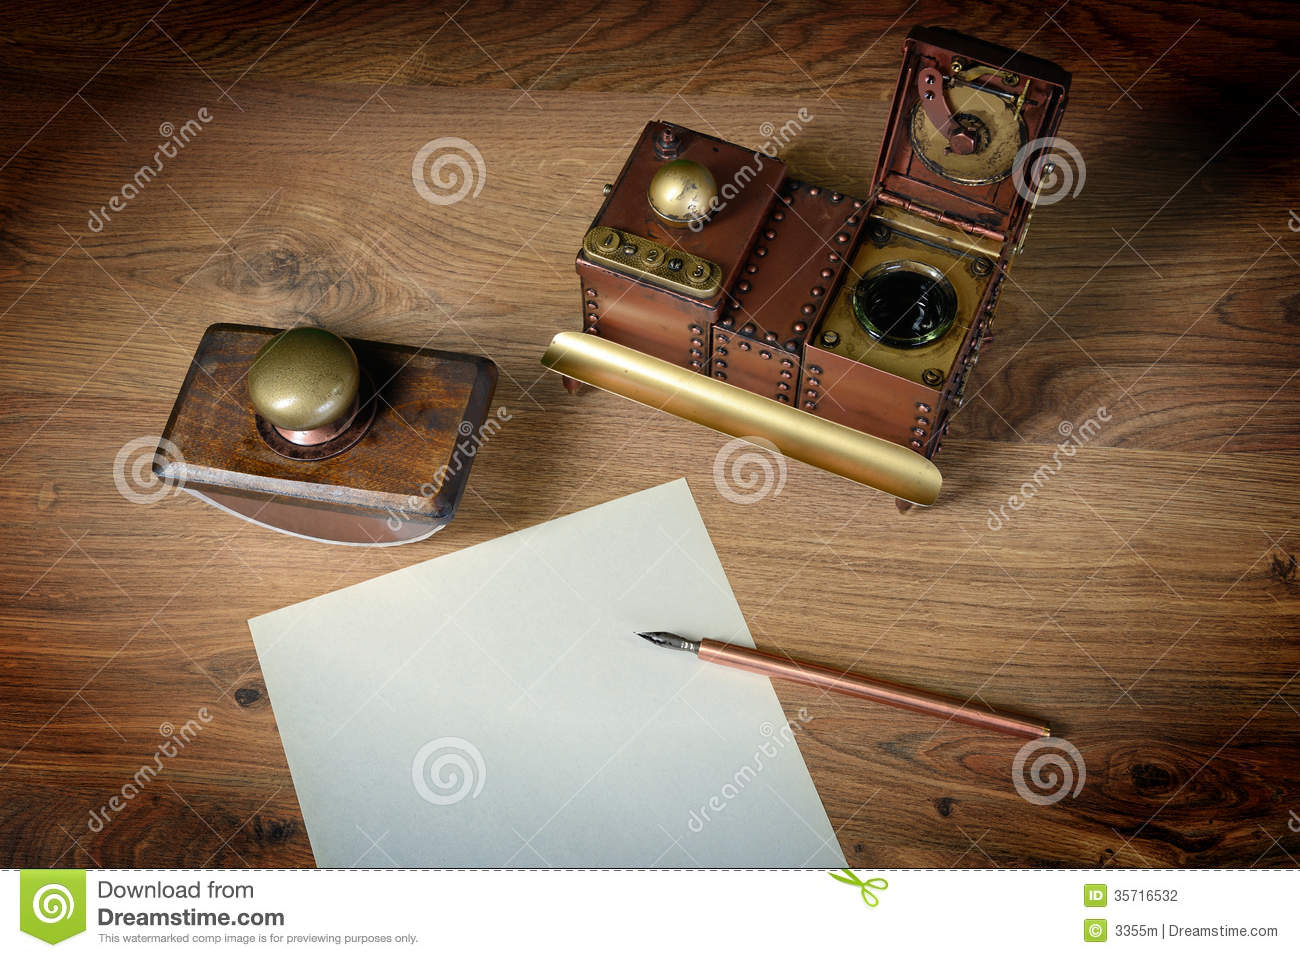 preparing to write a letter